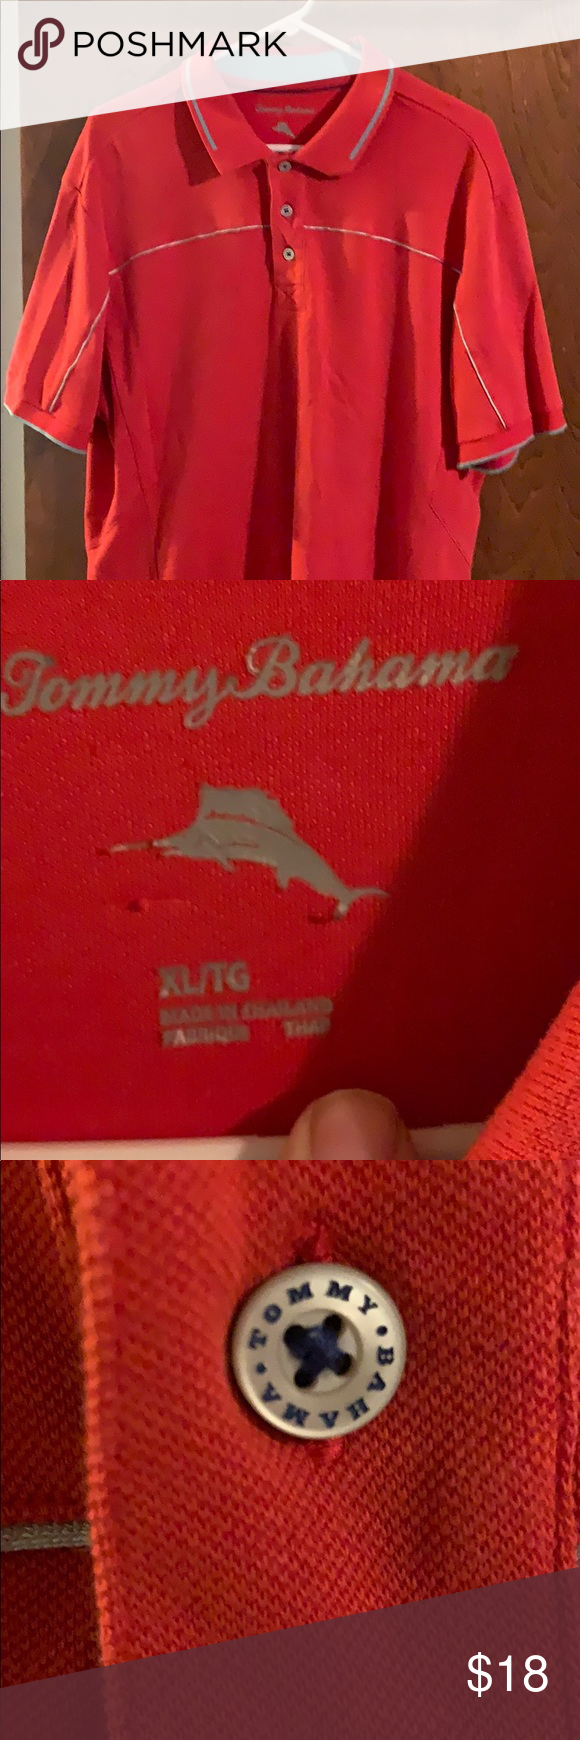 Gorgeous Tommy Bahama Xl Polo Great Finishes Tommy Bahama Tommy Bahama Shirts Tommy